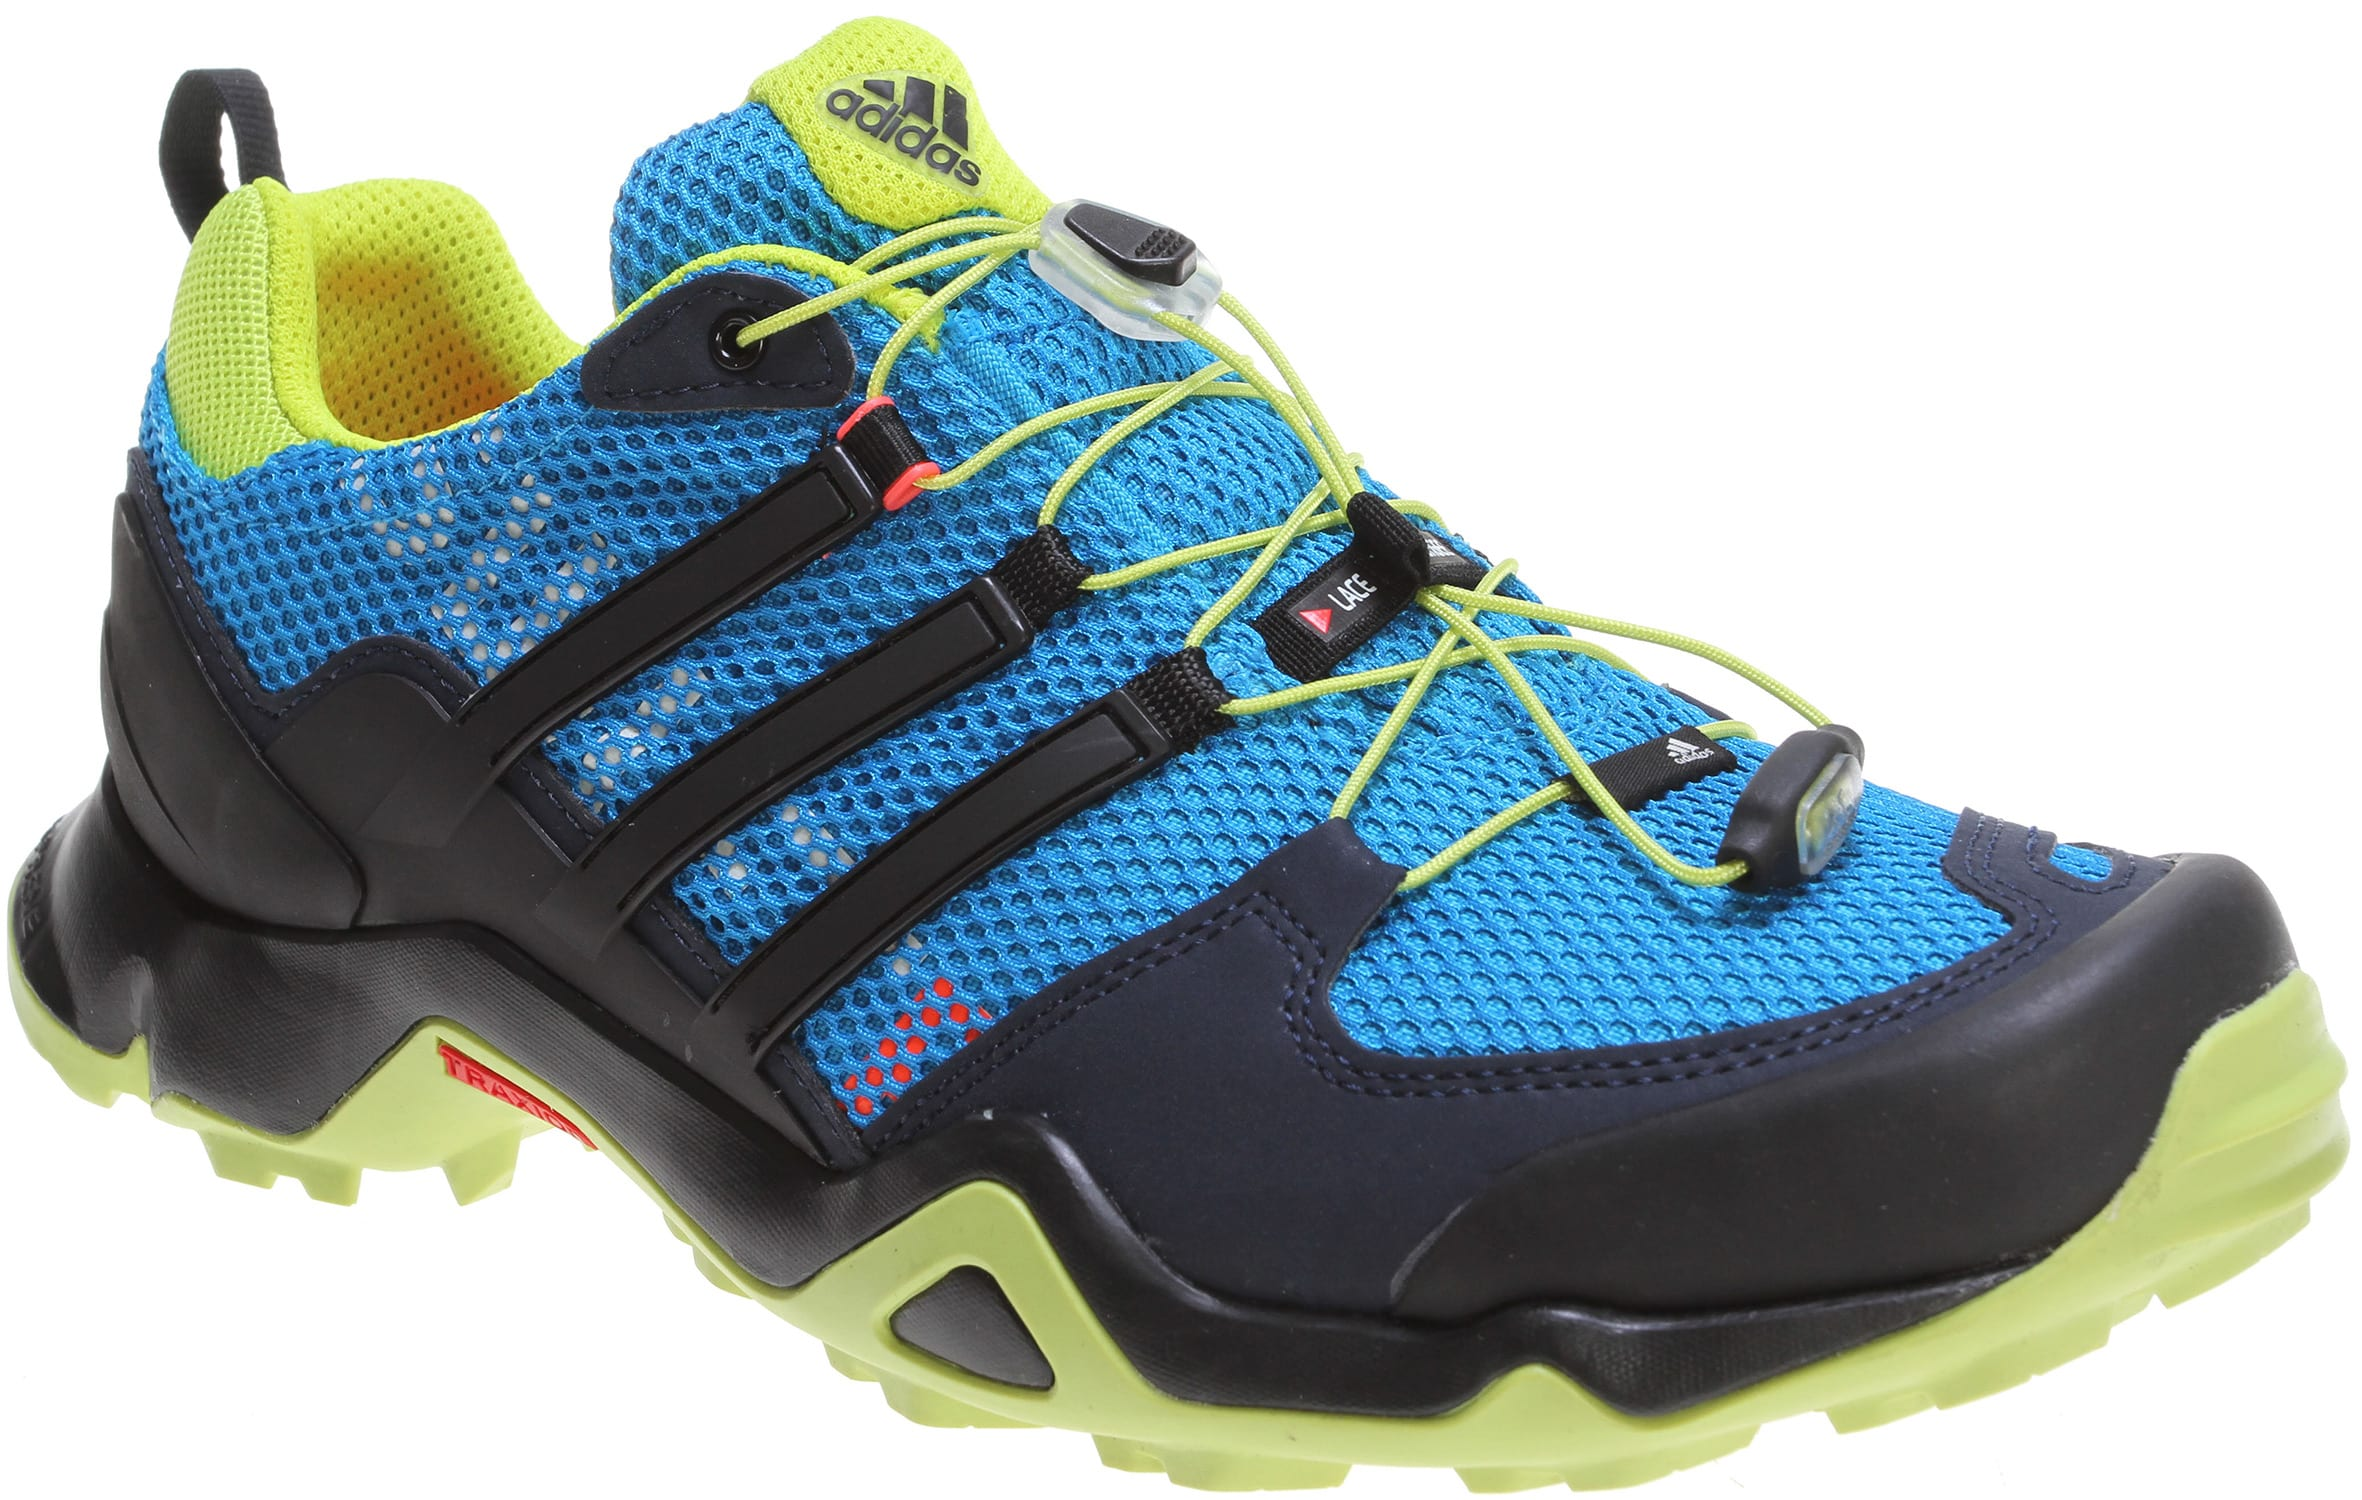 On Sale Adidas Terrex Swift R Hiking Shoes Up To 50 Off